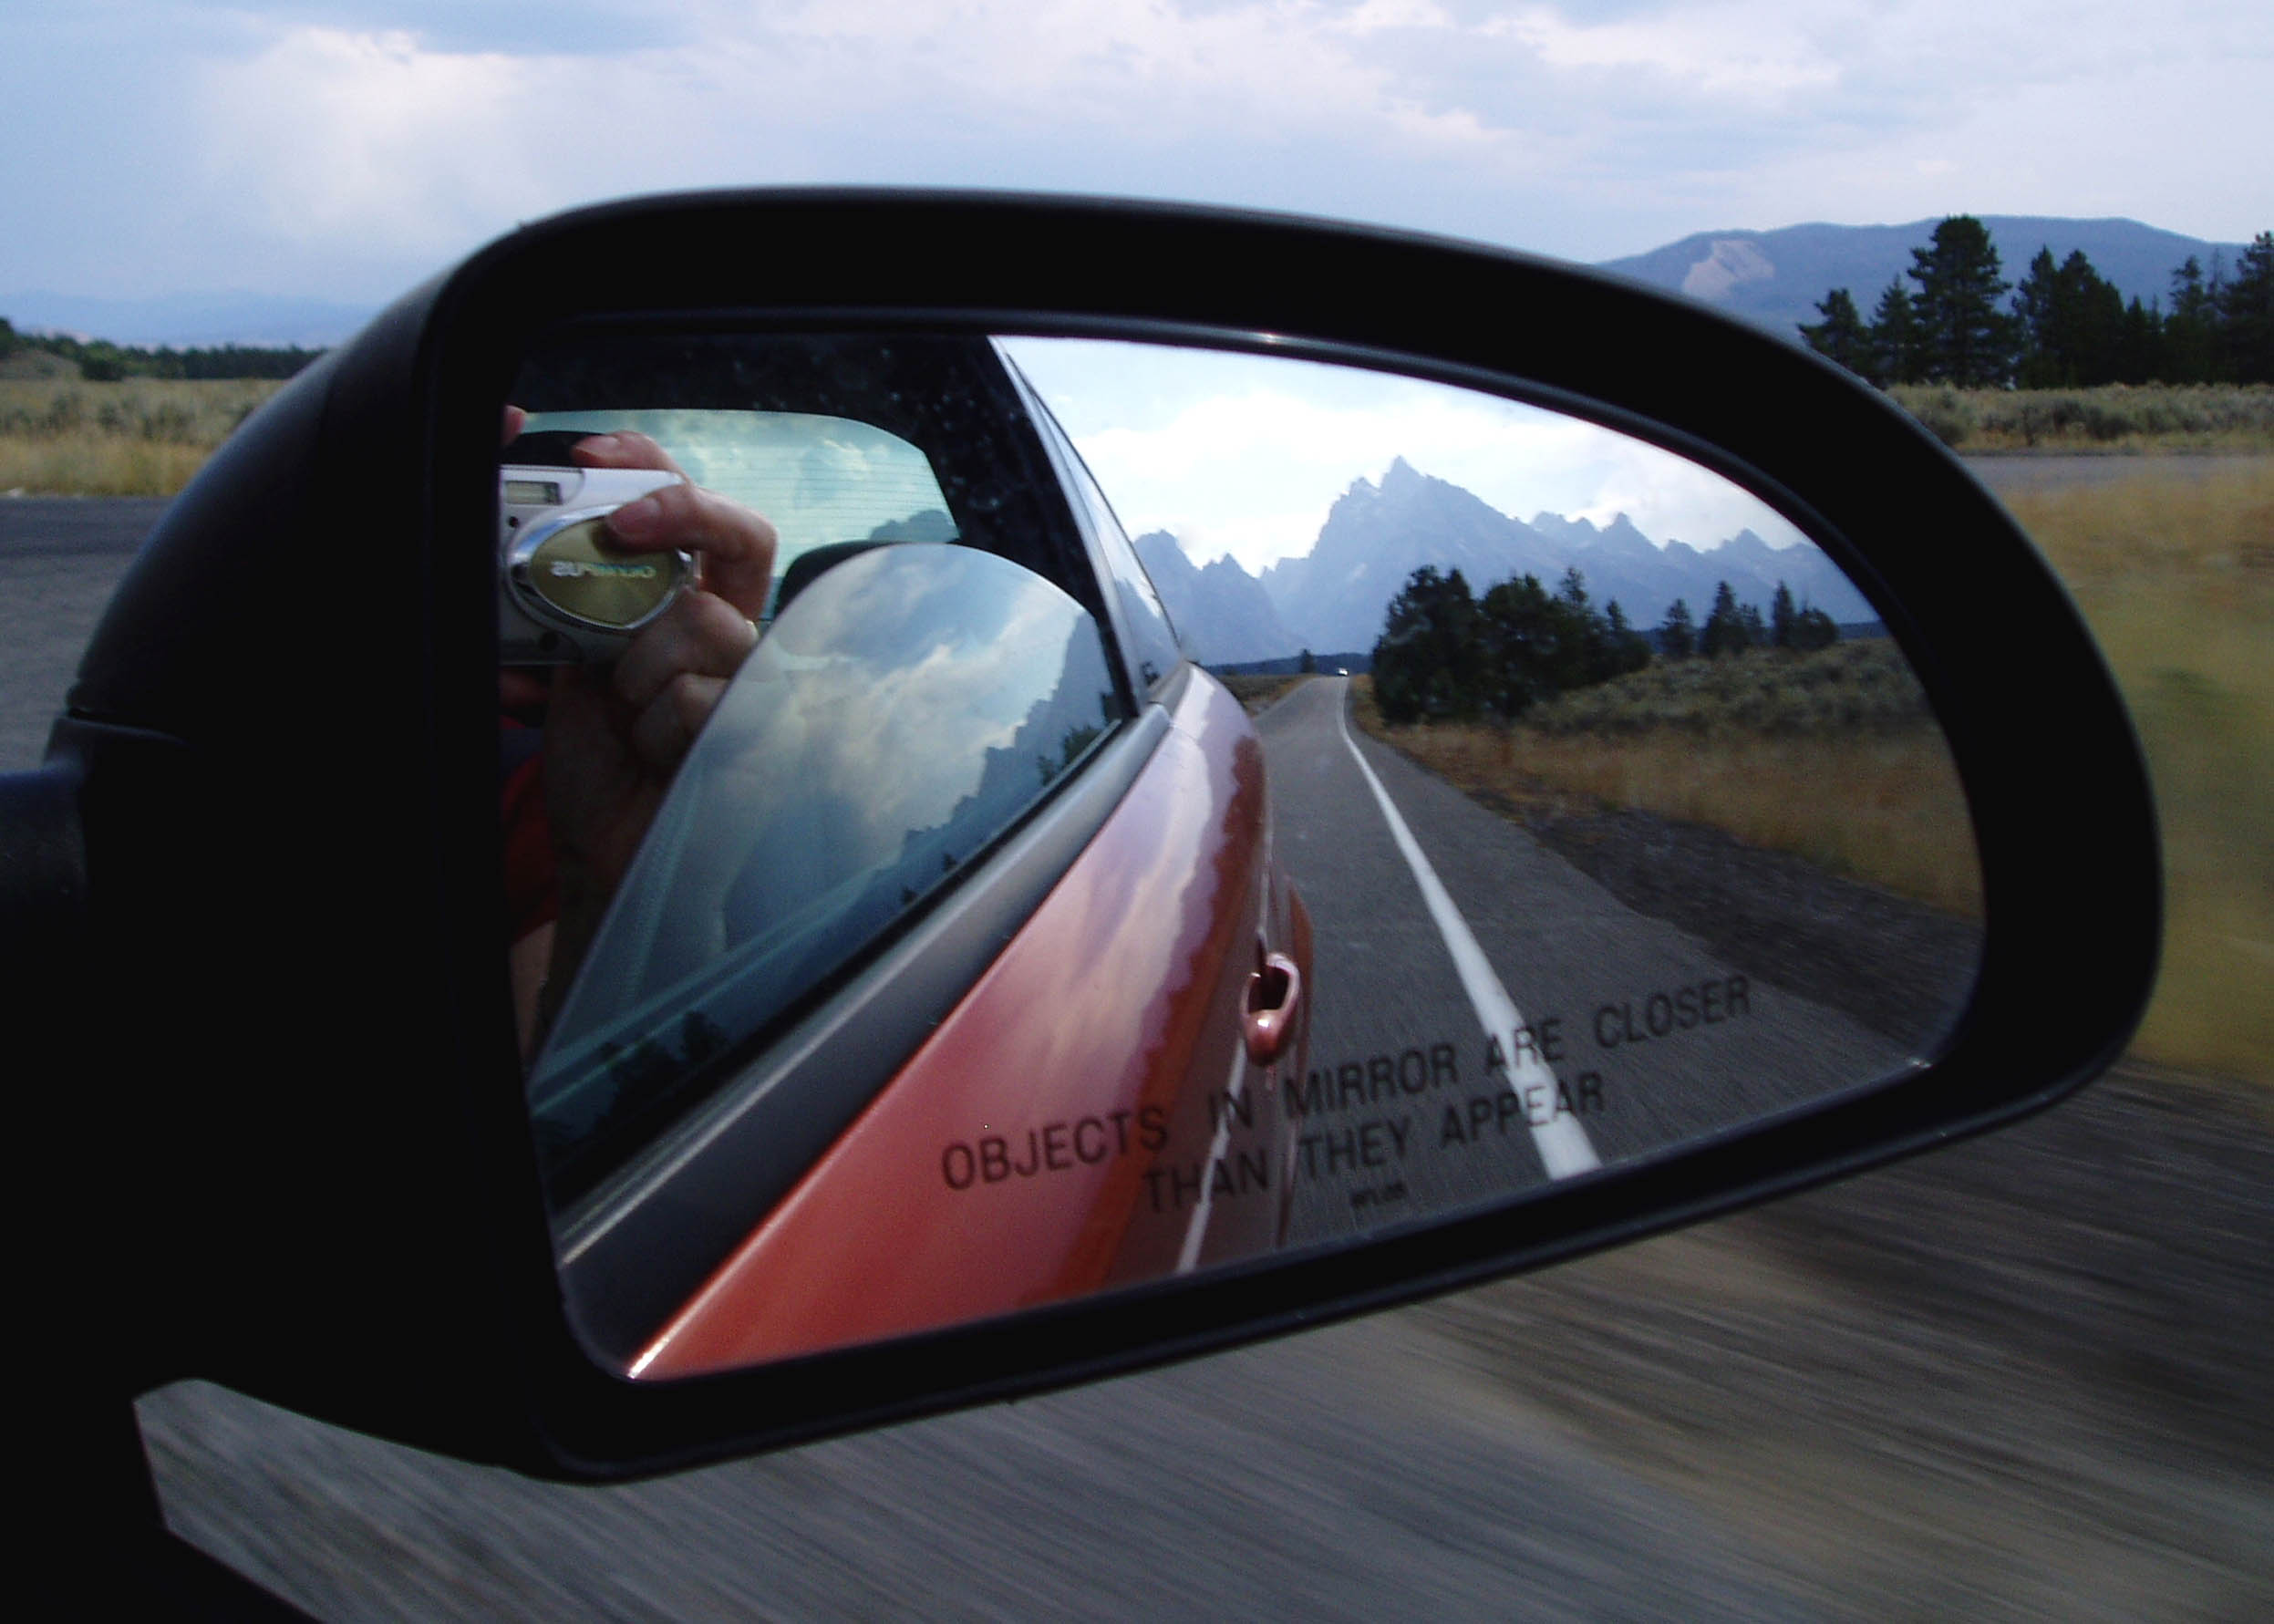 Mountain landscape reflected in car mirror